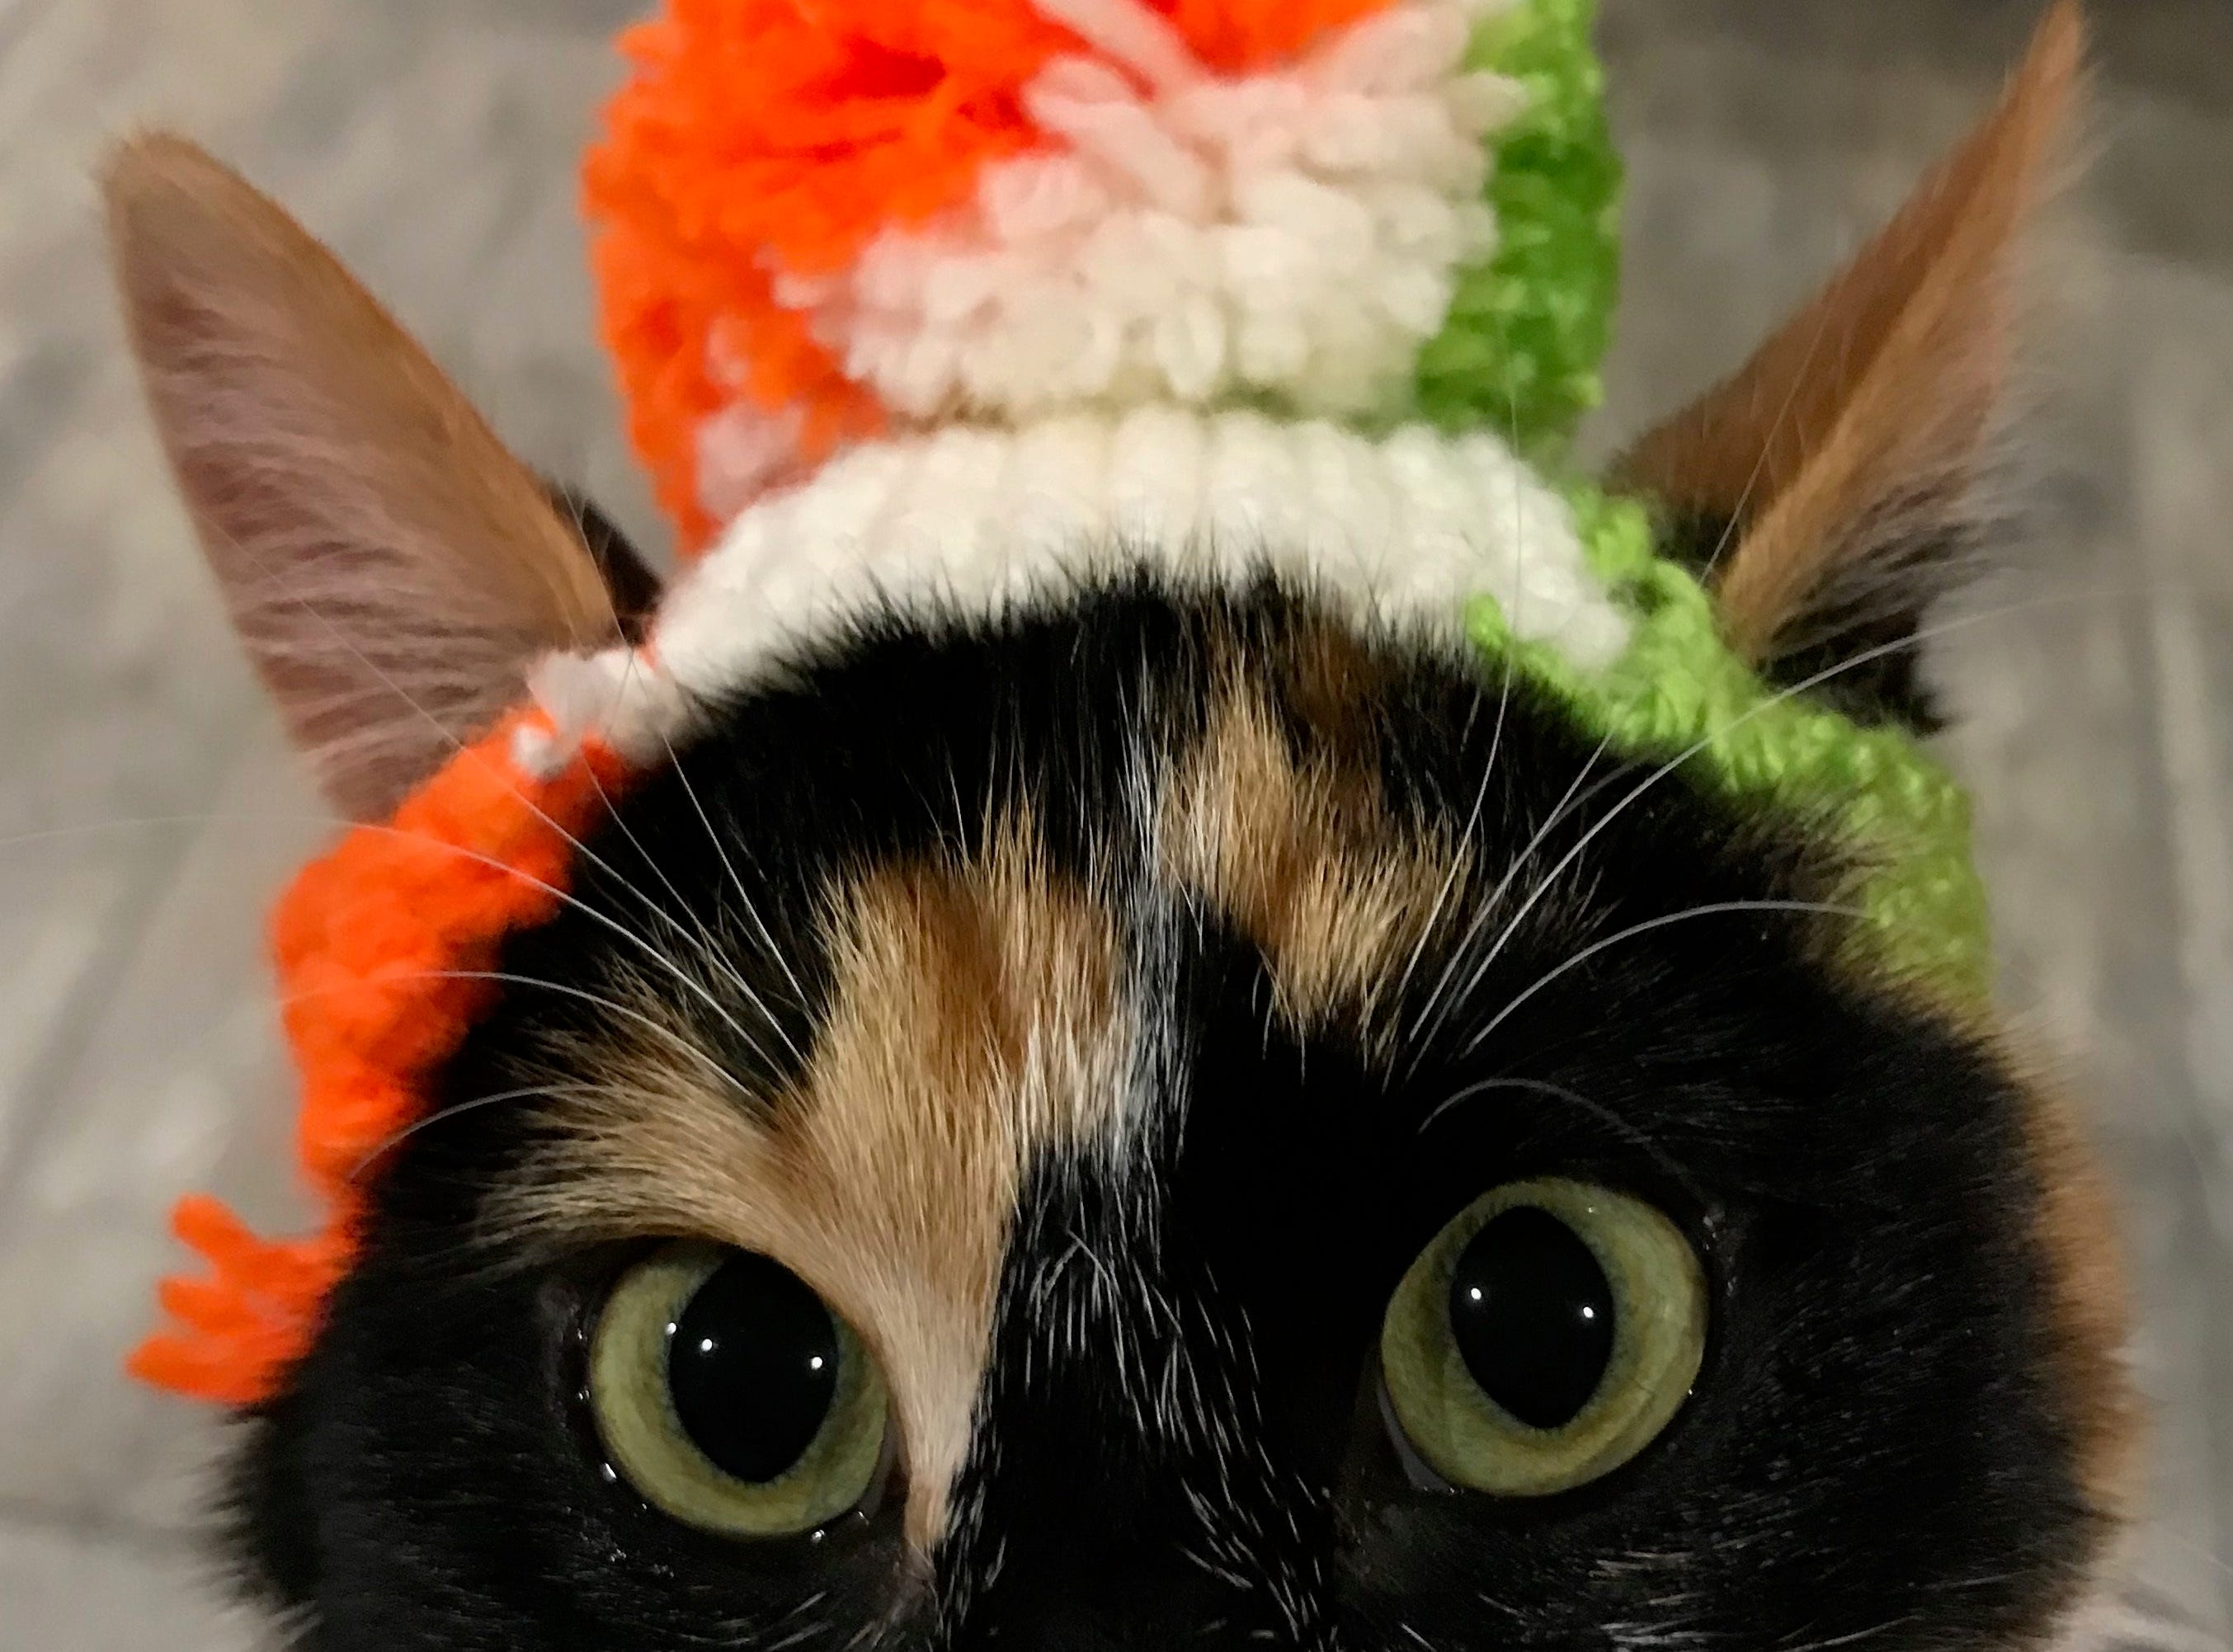 """Jennie Gresham knits """"Cat Hats"""" for friends, family and by request, asking only that recipients donate to the Maclean Animal Adoption Center in return.  Owners take photos and send their cats' """"comment"""" on the hat.  Guinness says """"I'm having e-collar flashbacks..."""""""